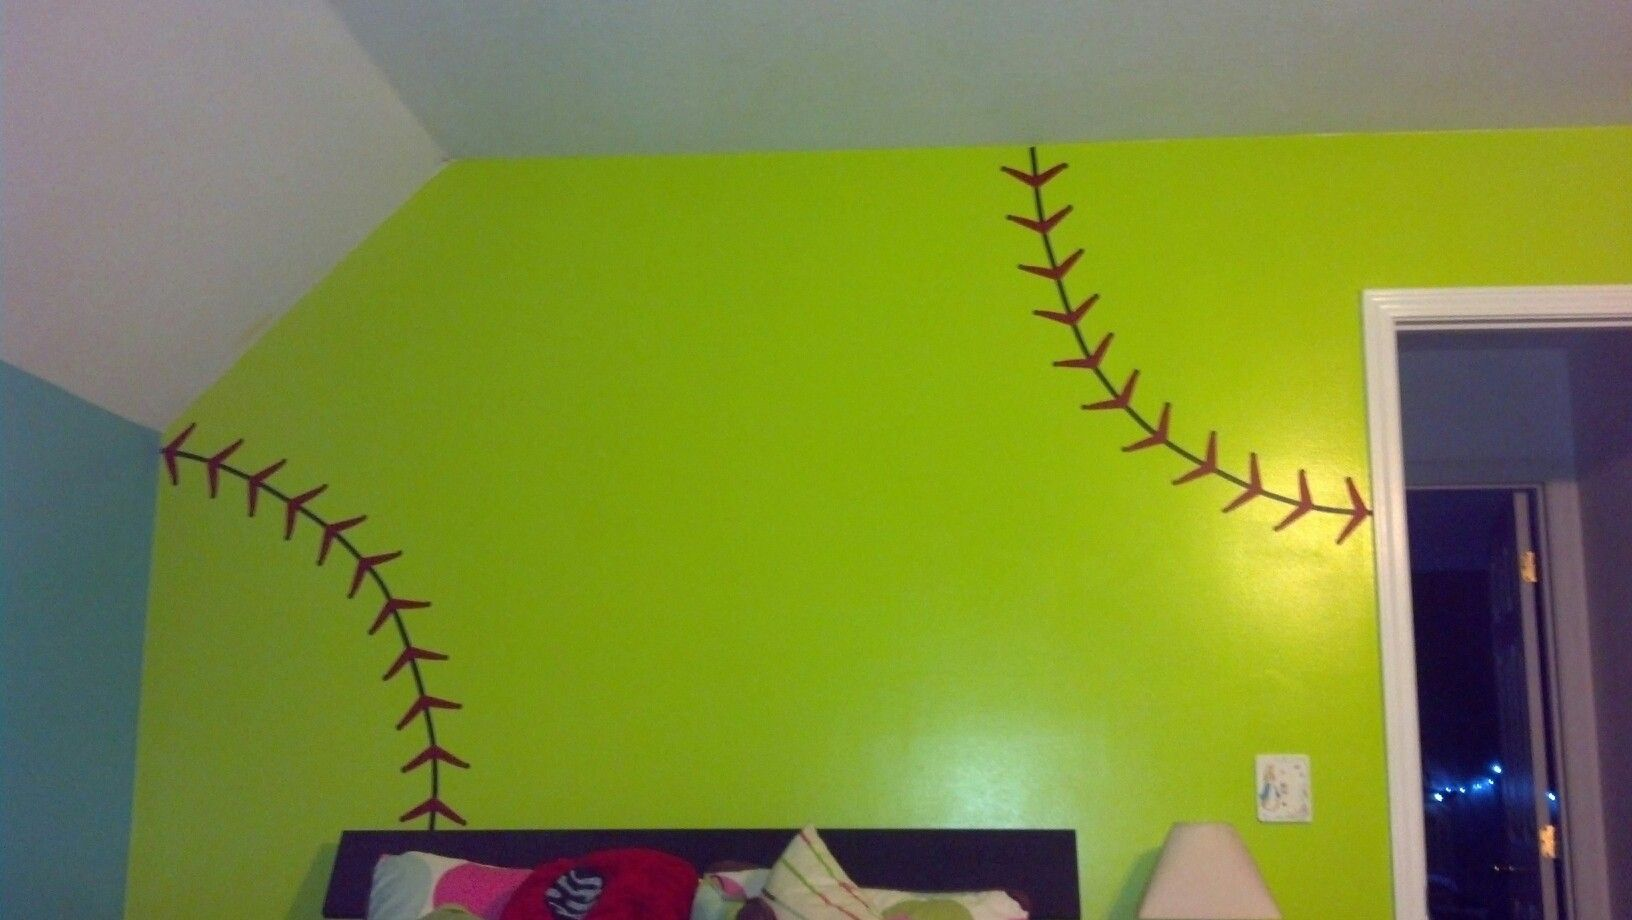 Pin By Lorna Crestani On Gifts Softball Room Softball Bedroom Softball Room Decor Softball decorations for bedroom